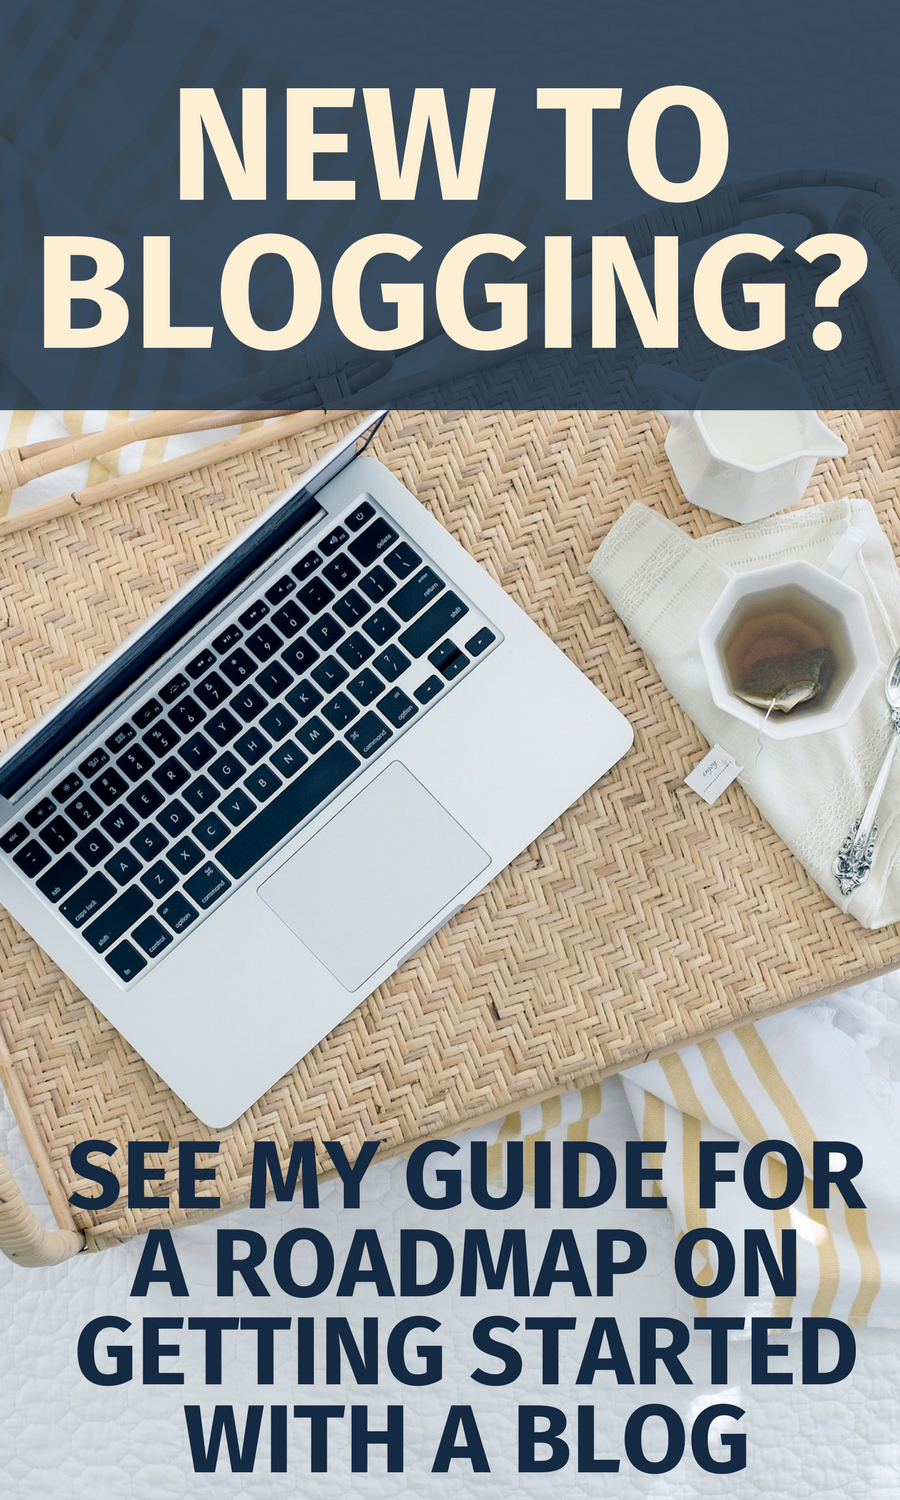 New To Blogging?